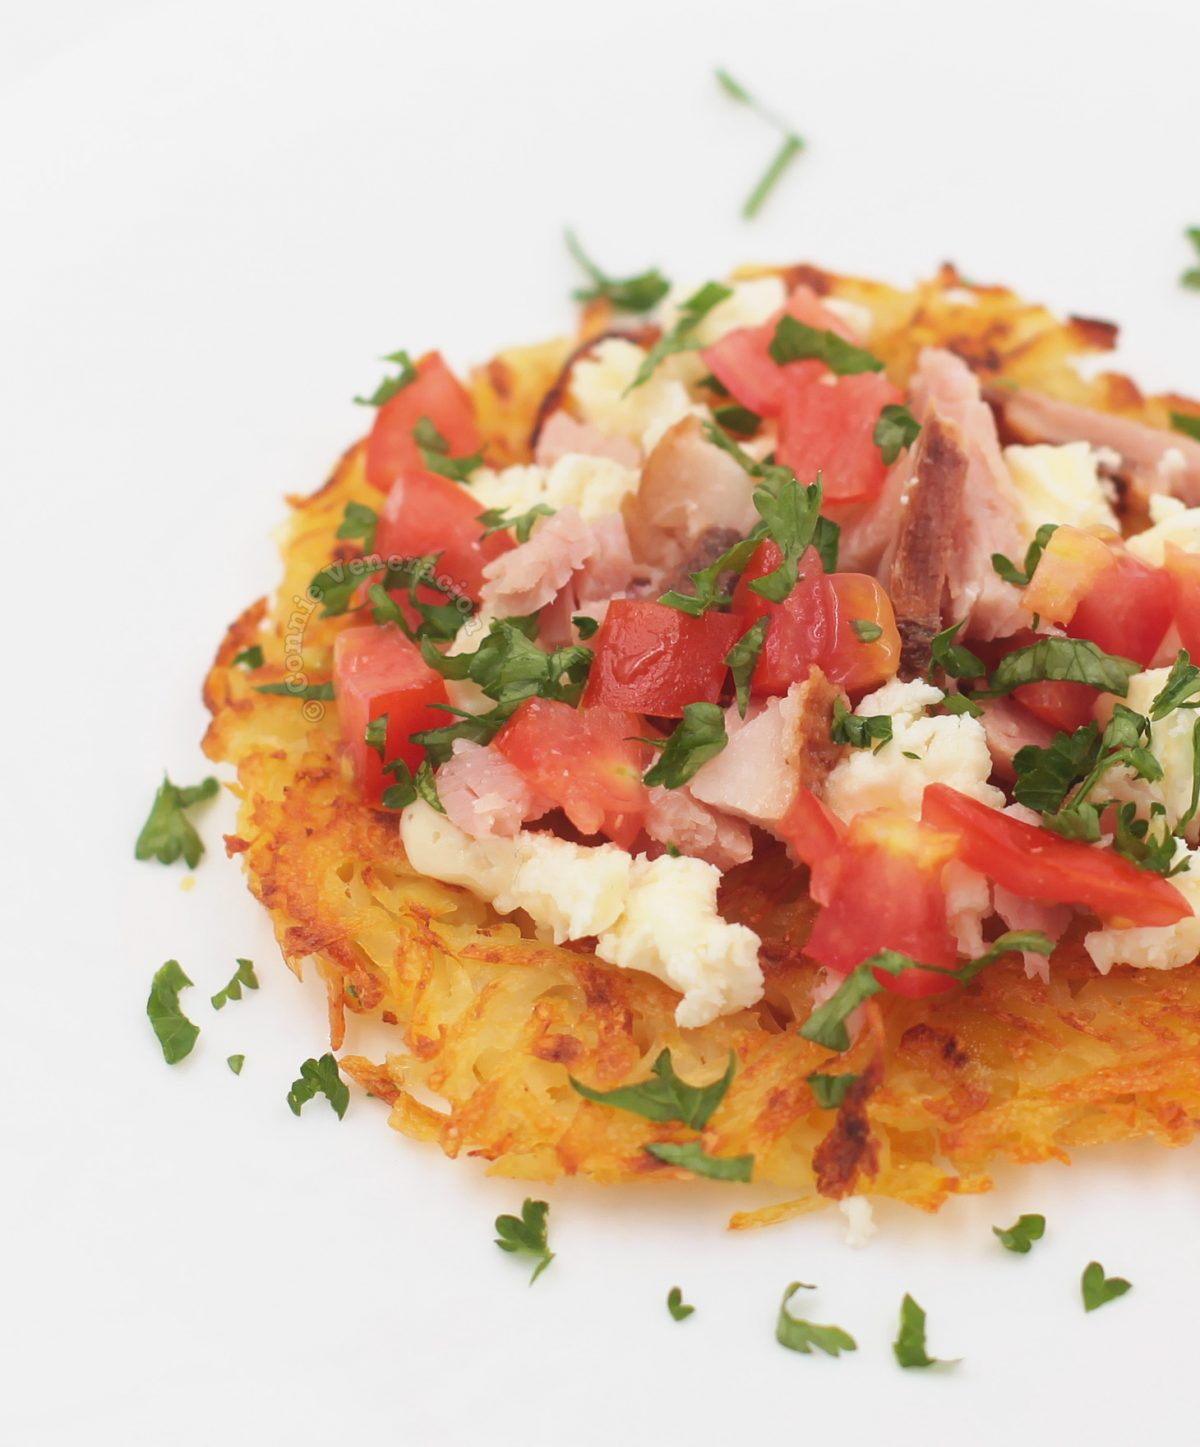 Crumbled feta, chopped smoky ham and juicy tomatoes on top of rösti (Swiss fried grated potatoes)